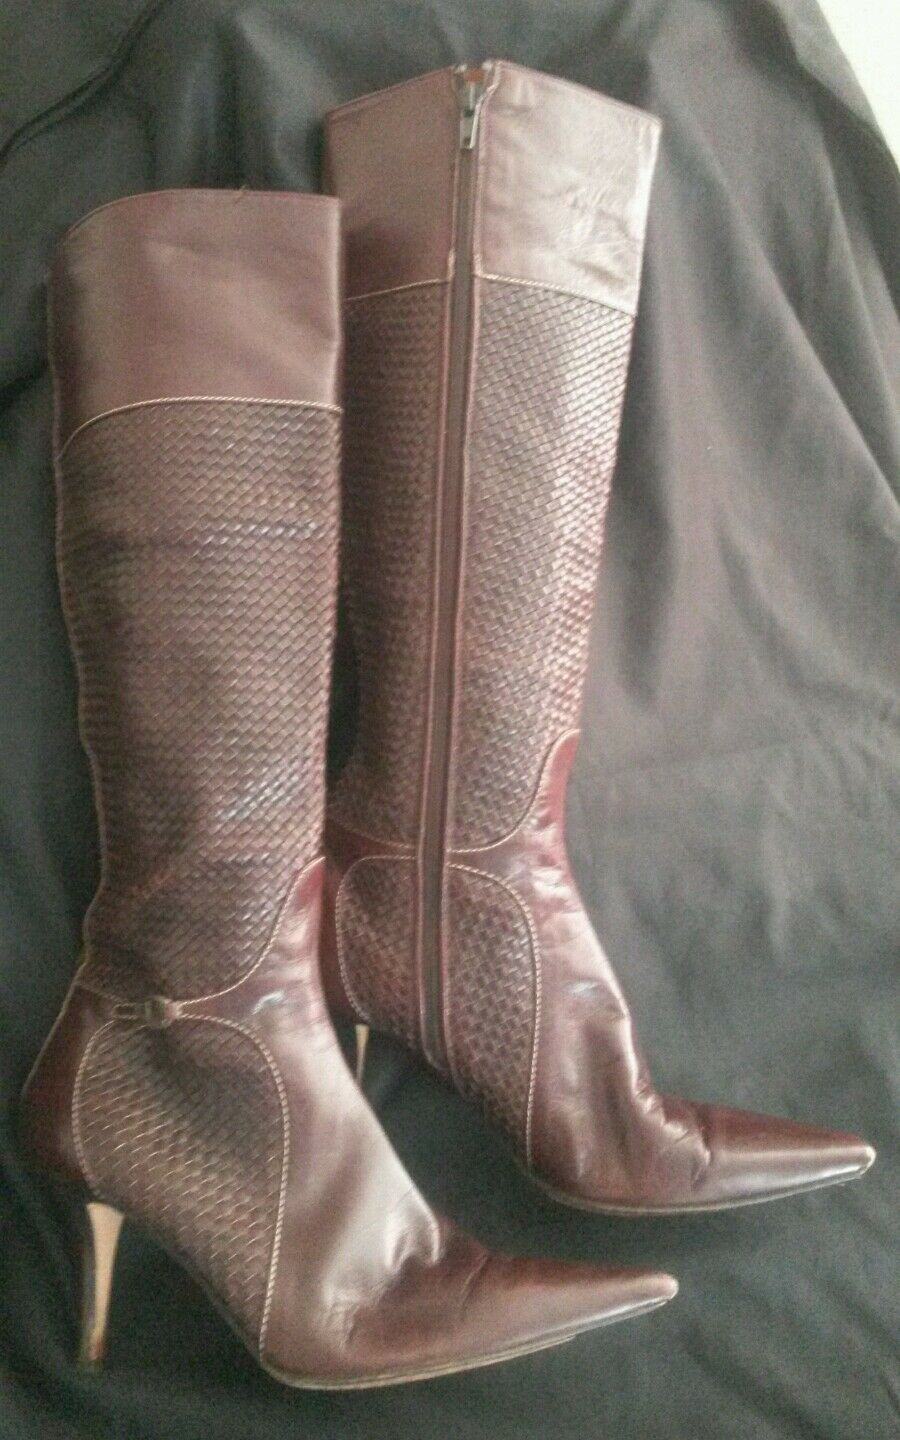 Cole haan brown leather knee high stiletto heel boots size 7.5